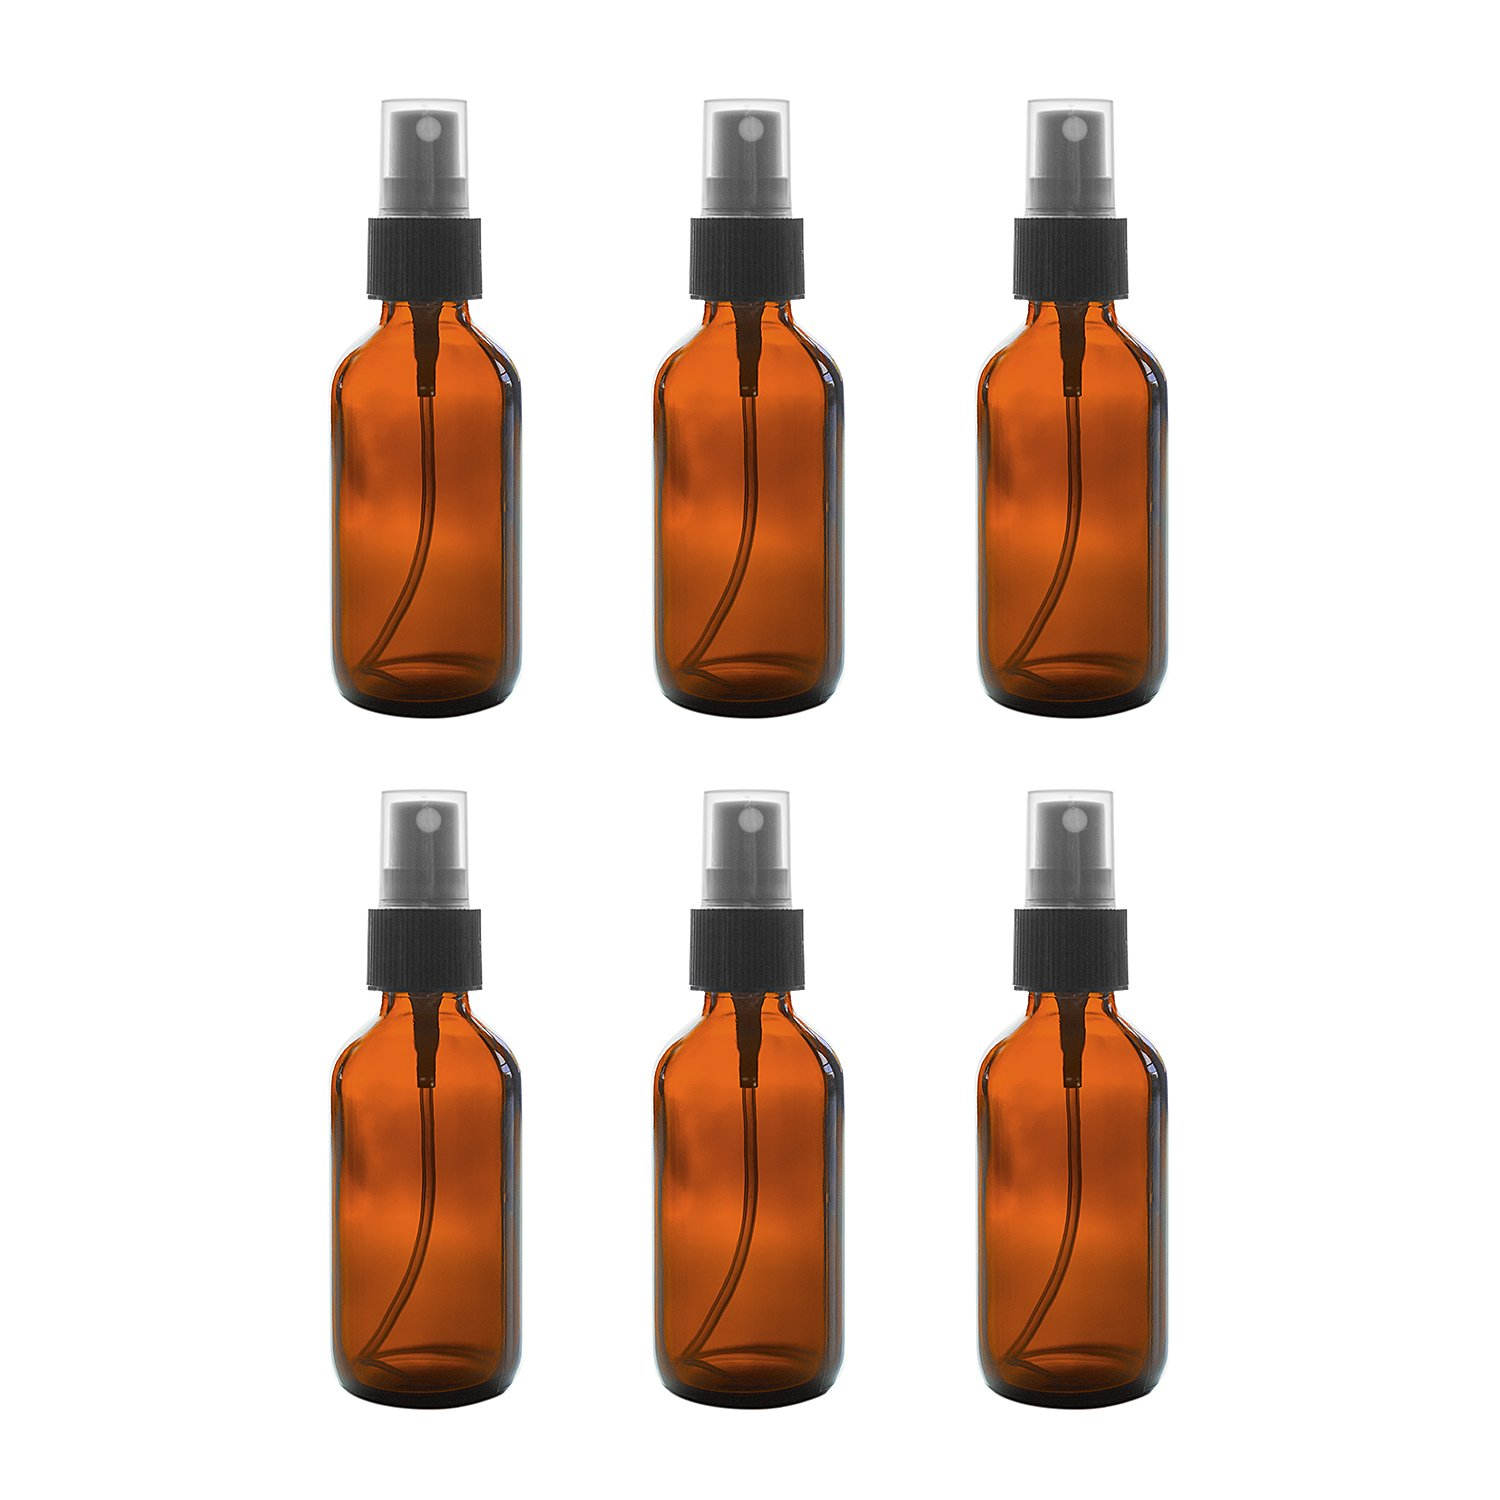 2 oz Amber Boston Round Glass Bottle with Fine Mist Sprayer Dispenser for Essential Oils, Chemistry Lab Chemicals, Colognes & Perfumes (6 Pack) by Super Z Outlet®